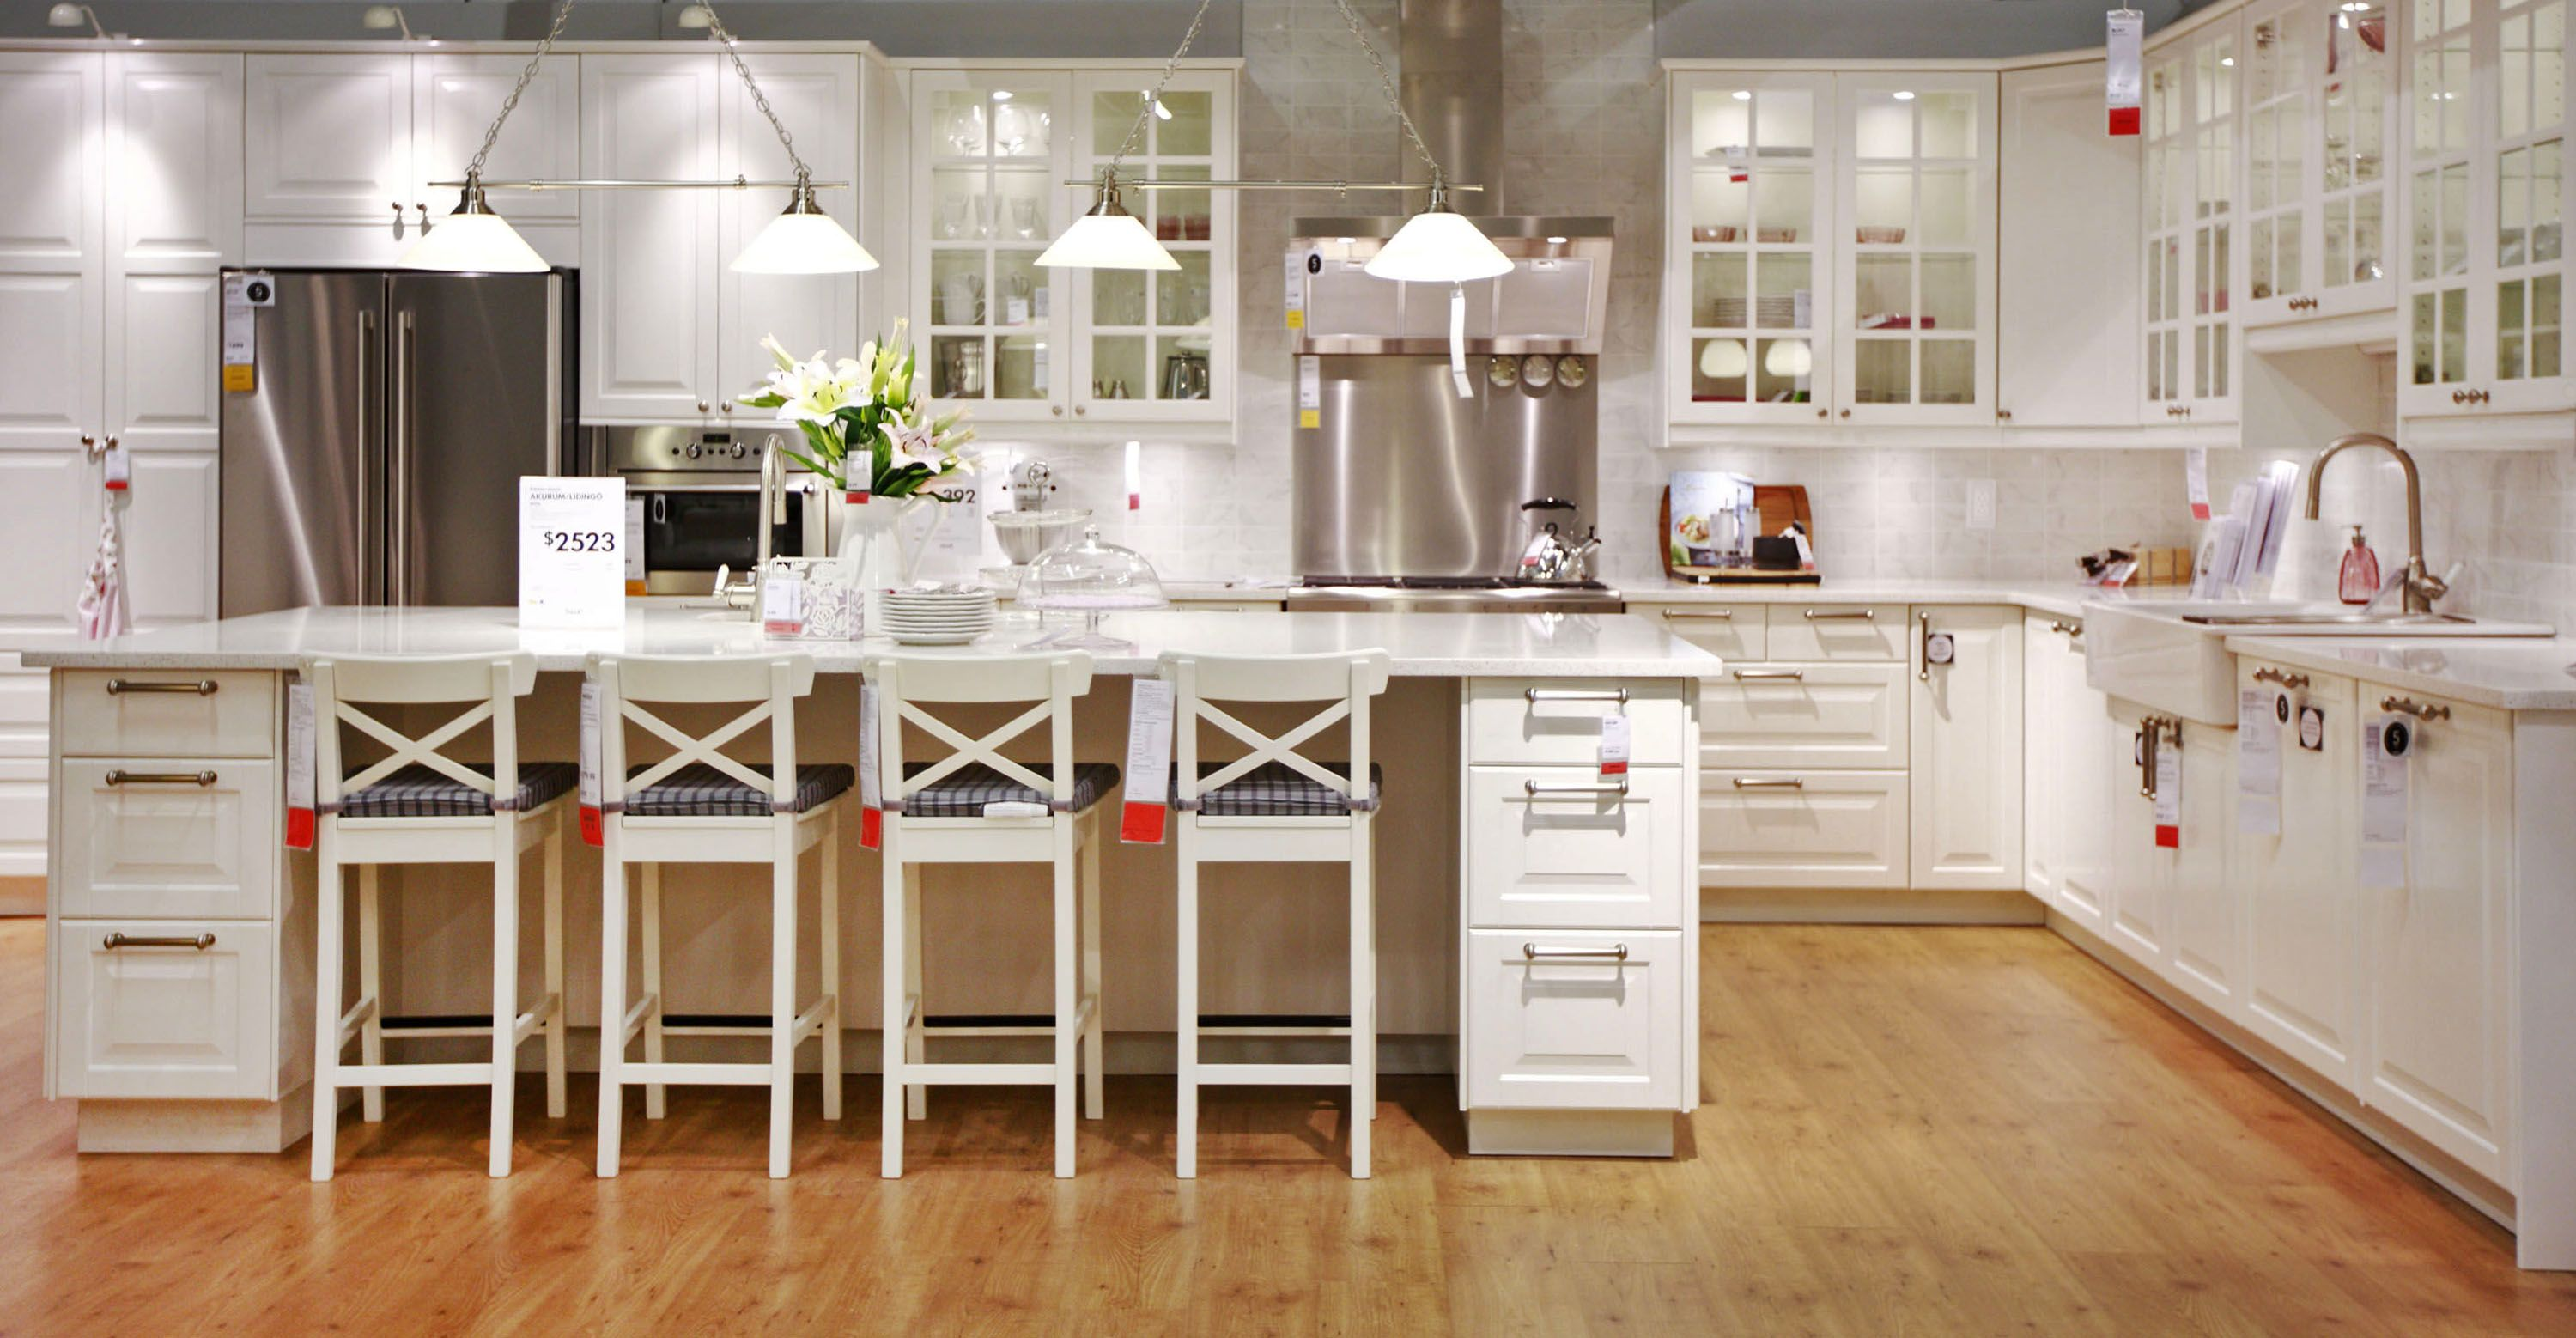 Luxurious White Wooden Ikea Kitchen Cabinets On Cool Brown Laminating Flooring With Large White Island And